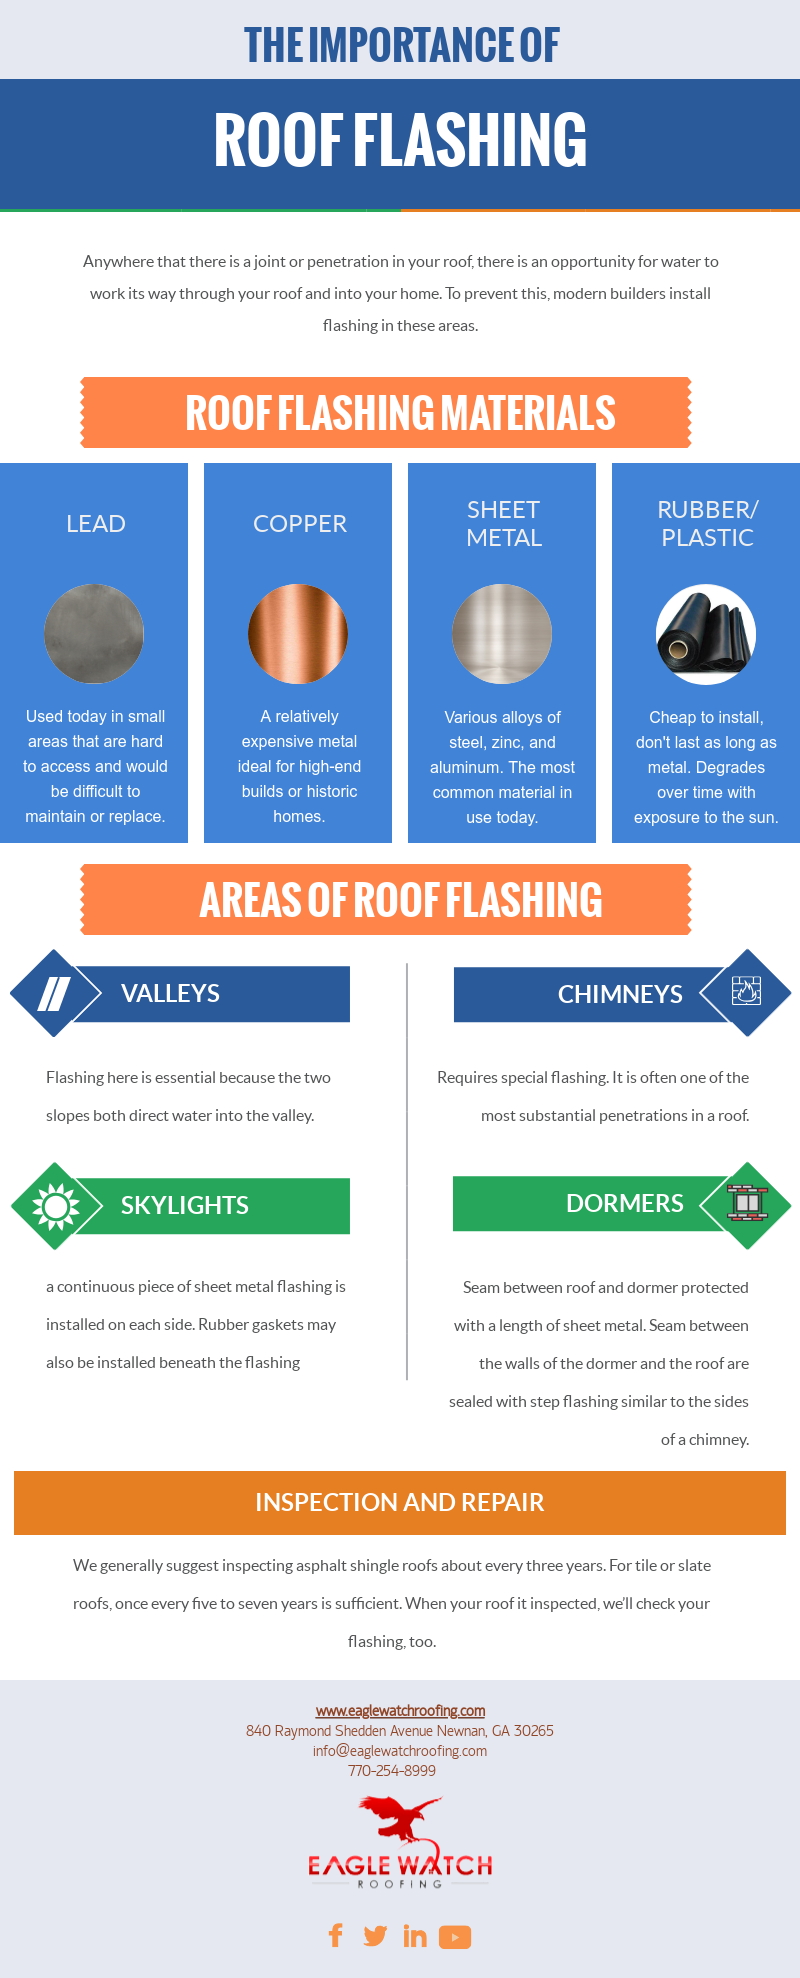 The Importance of Roof Flashing [infographic]